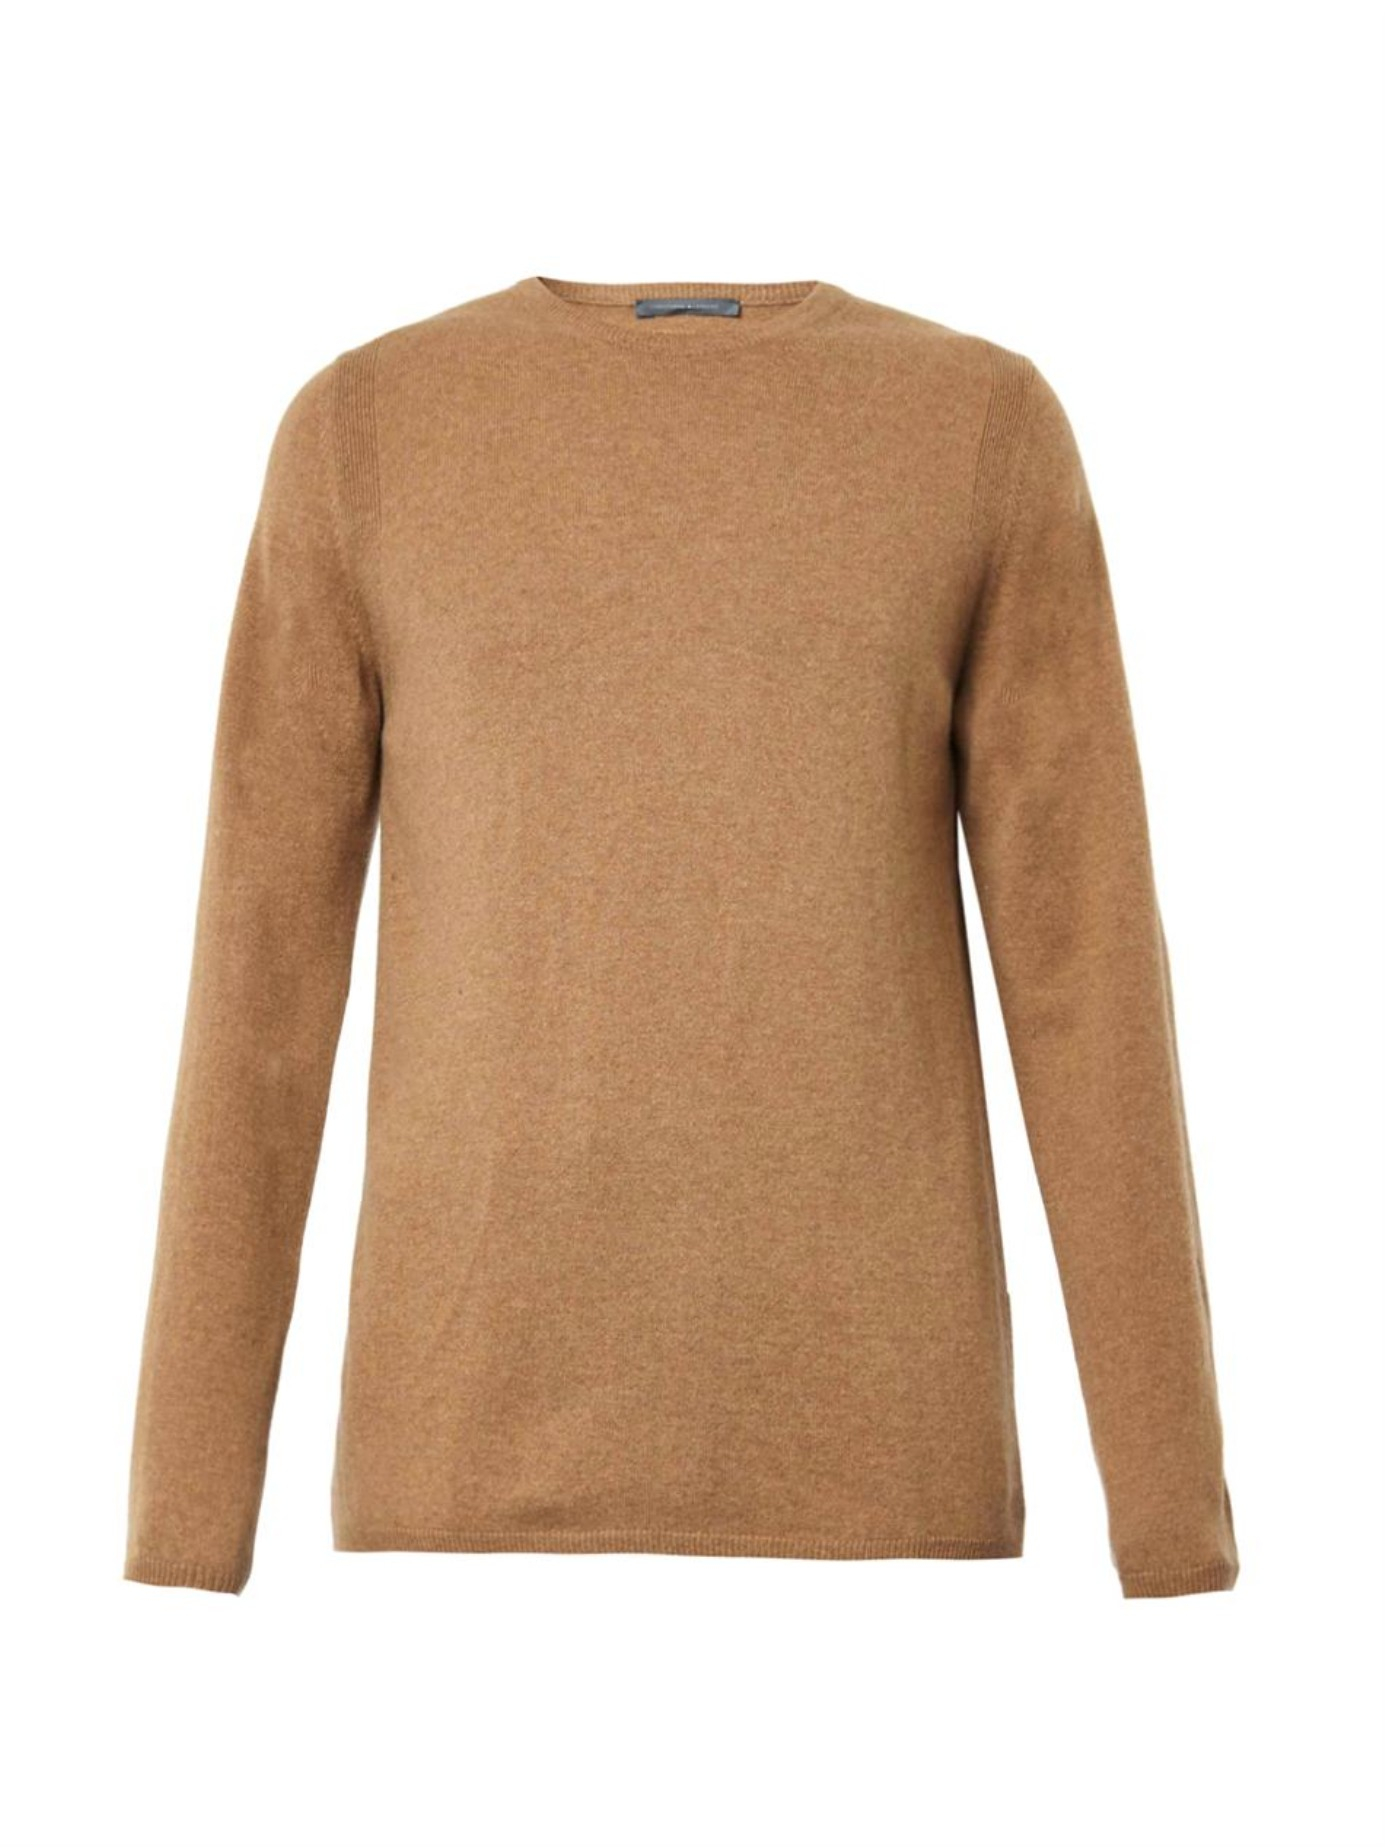 Lemaire Crew-neck Cashmere Sweater in Brown for Men | Lyst